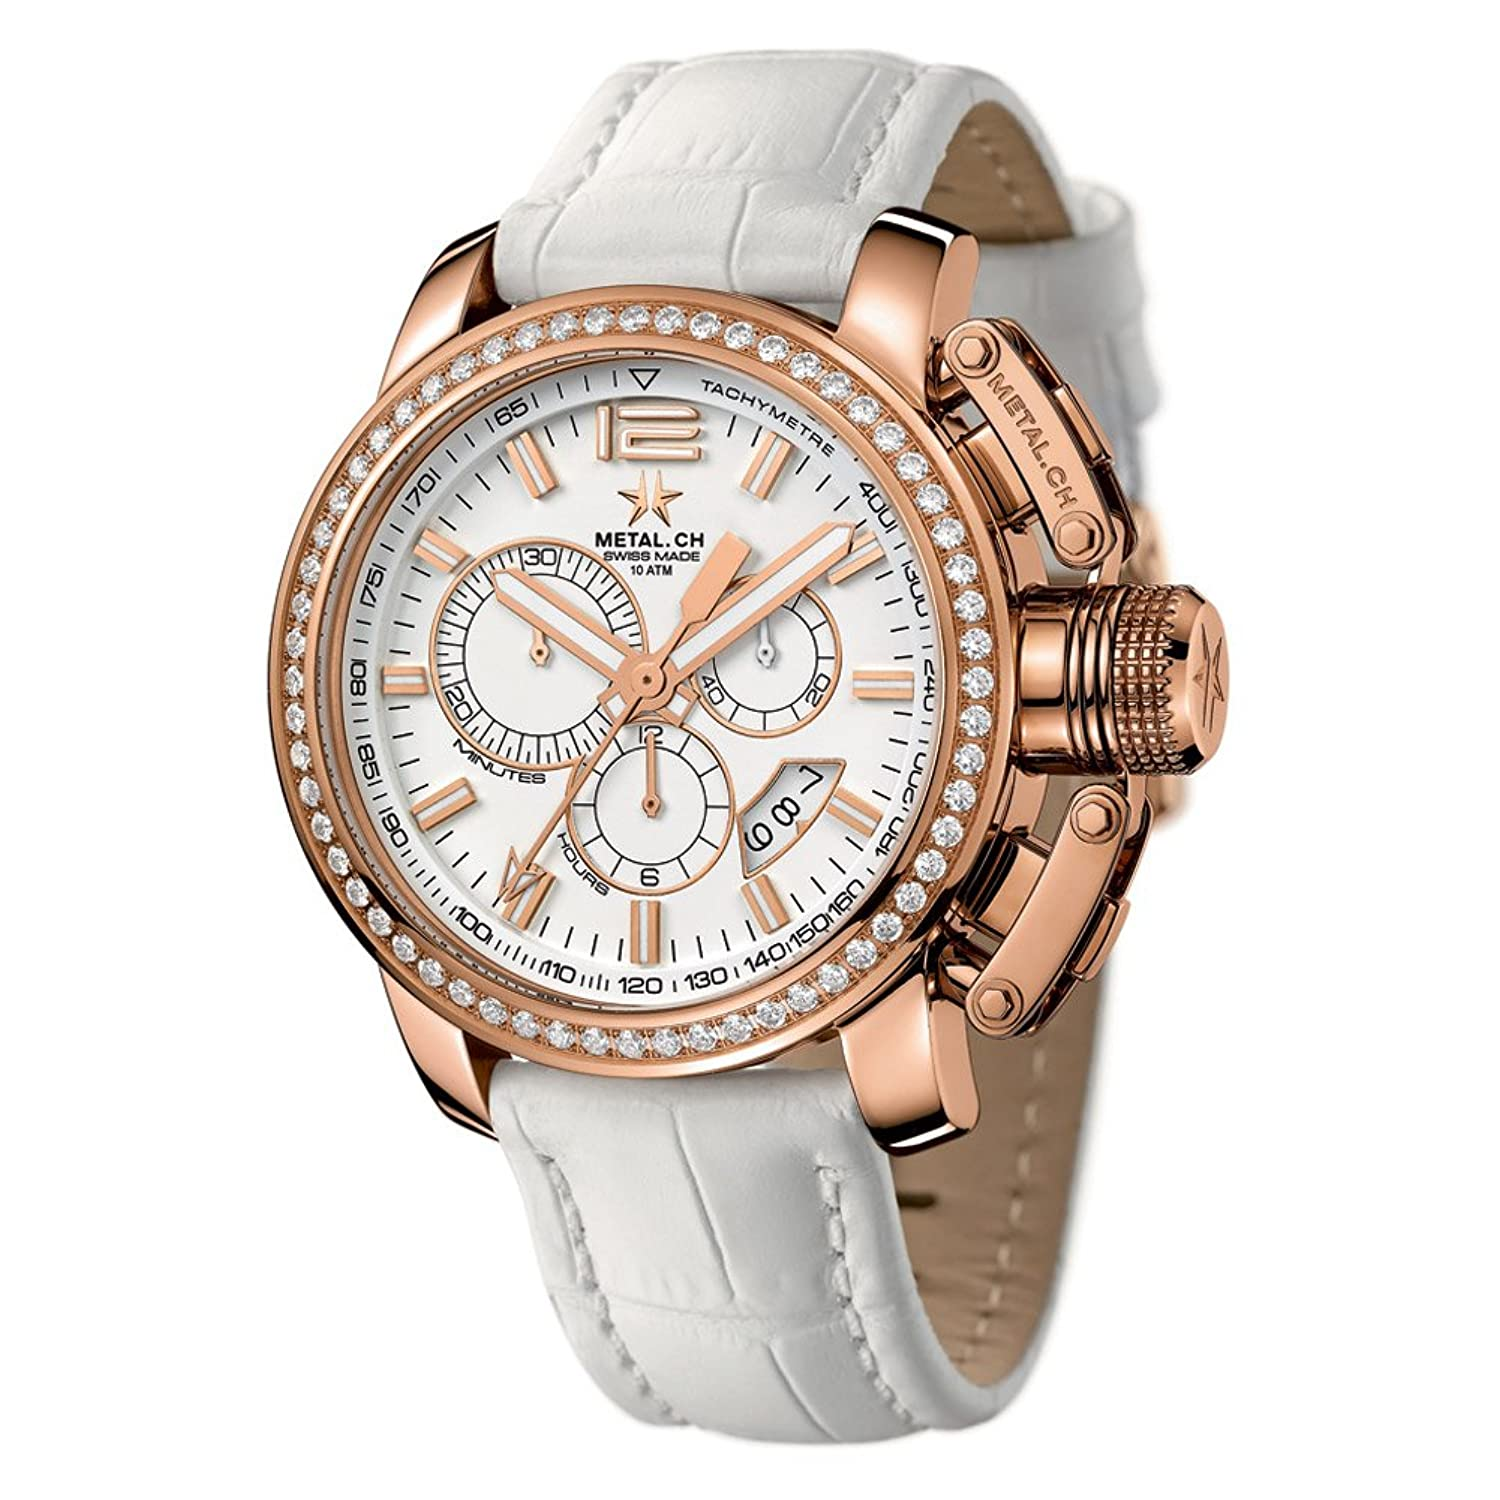 METAL Chronometrie Swiss Made Uhr - CHRONO rose gold 44mm